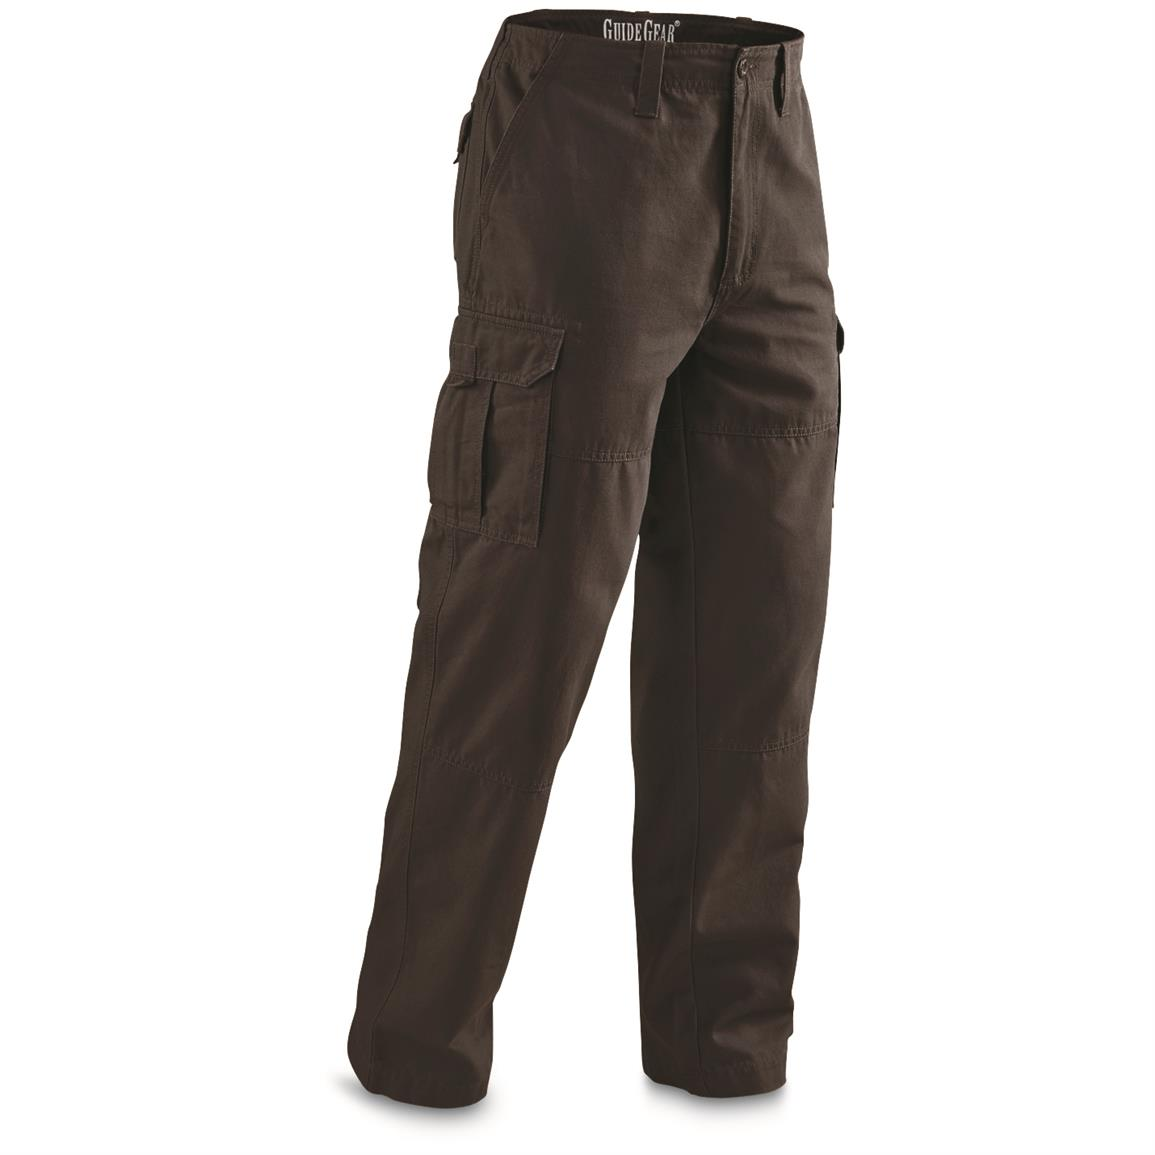 Guide Gear Men's Outdoor Cargo Pants, Brown